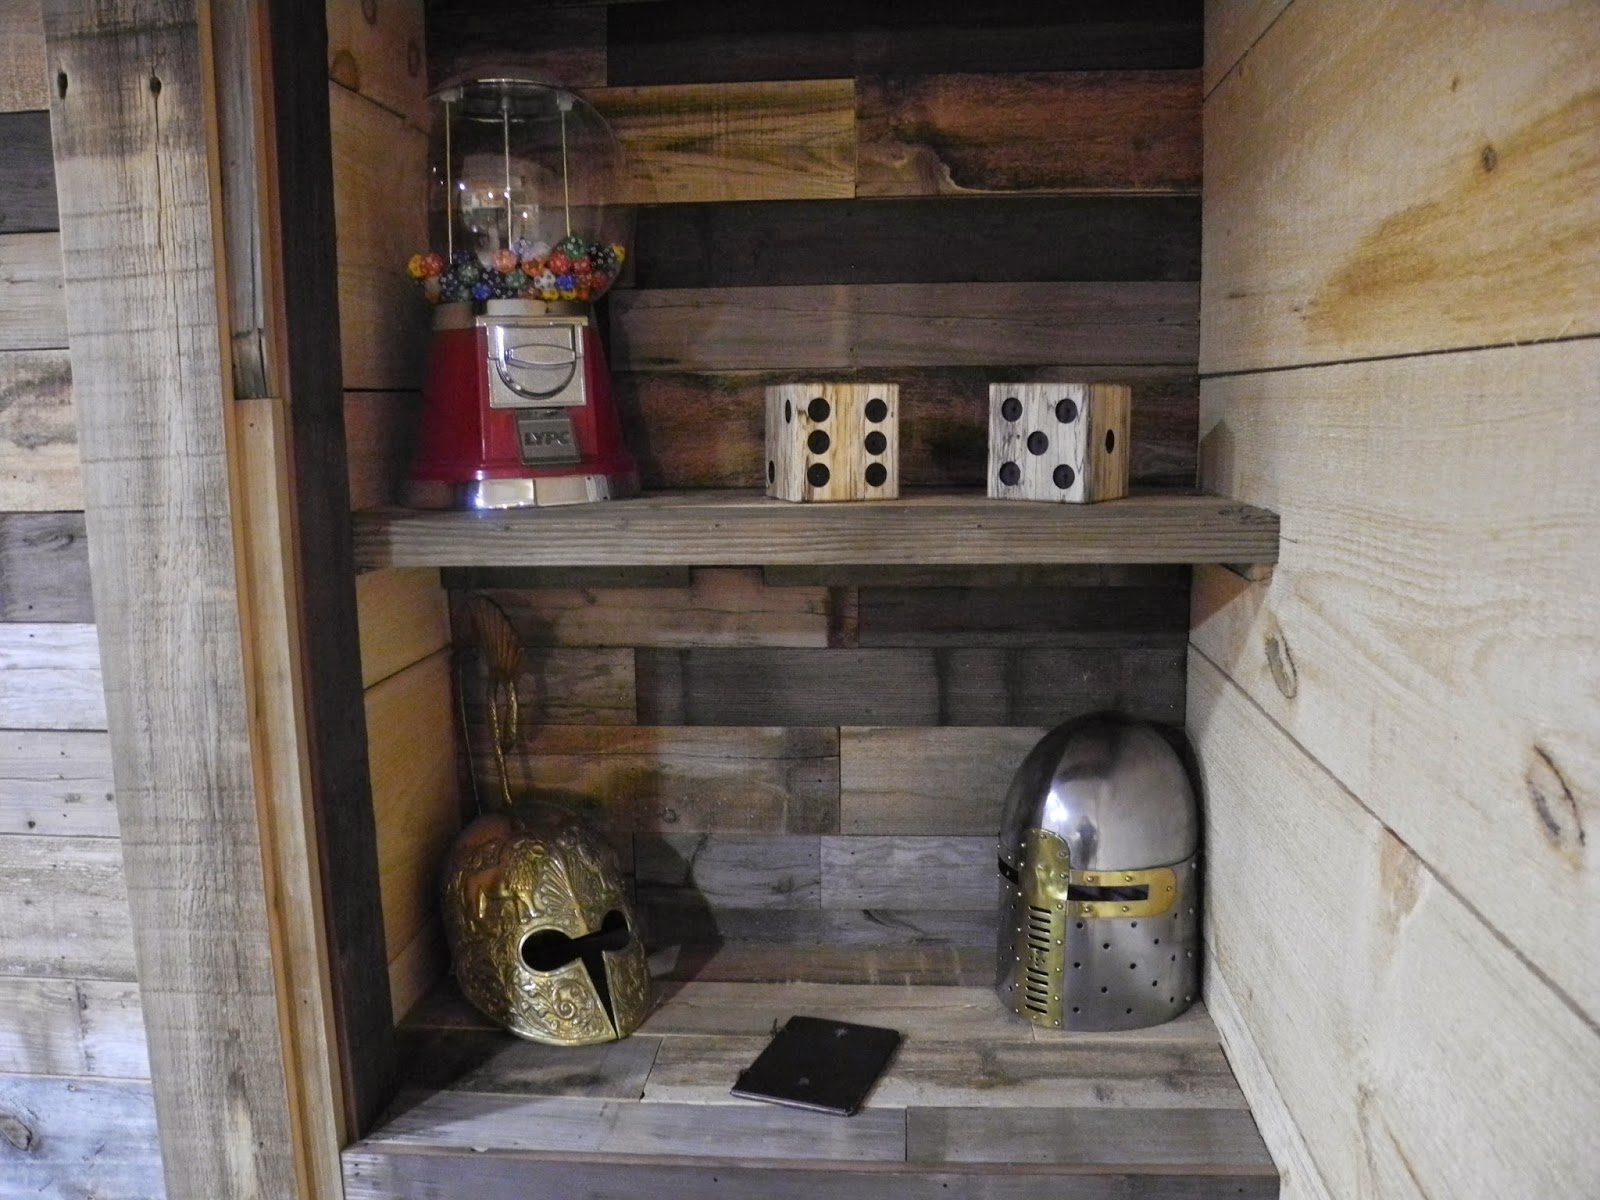 gumball and dungeons machine altar